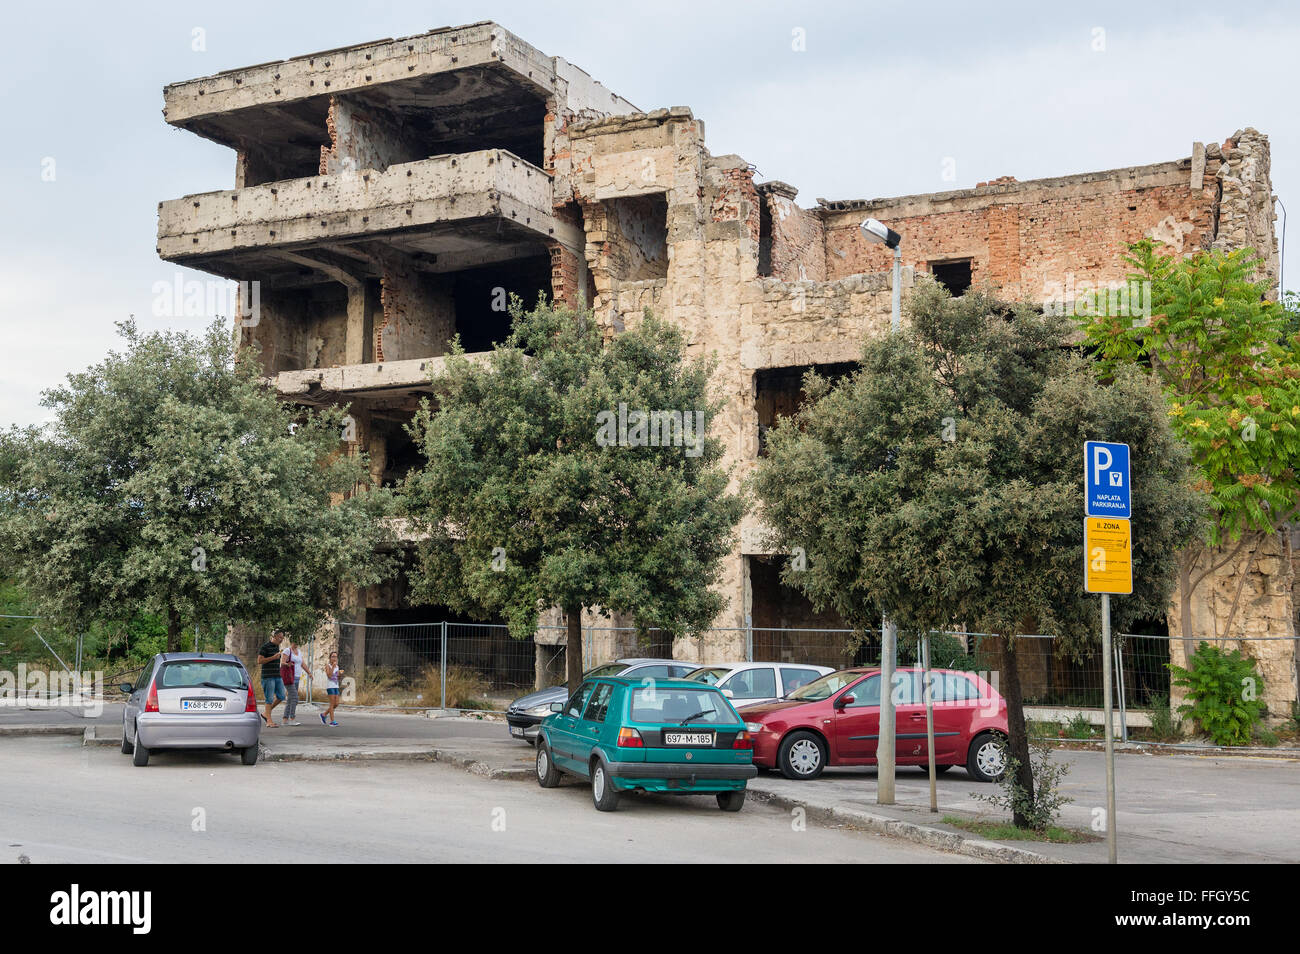 Abandoned building, detroyed during Bosnian War at Bulevar Street in Mostar city, Bosnia and Herzegovina Stock Photo